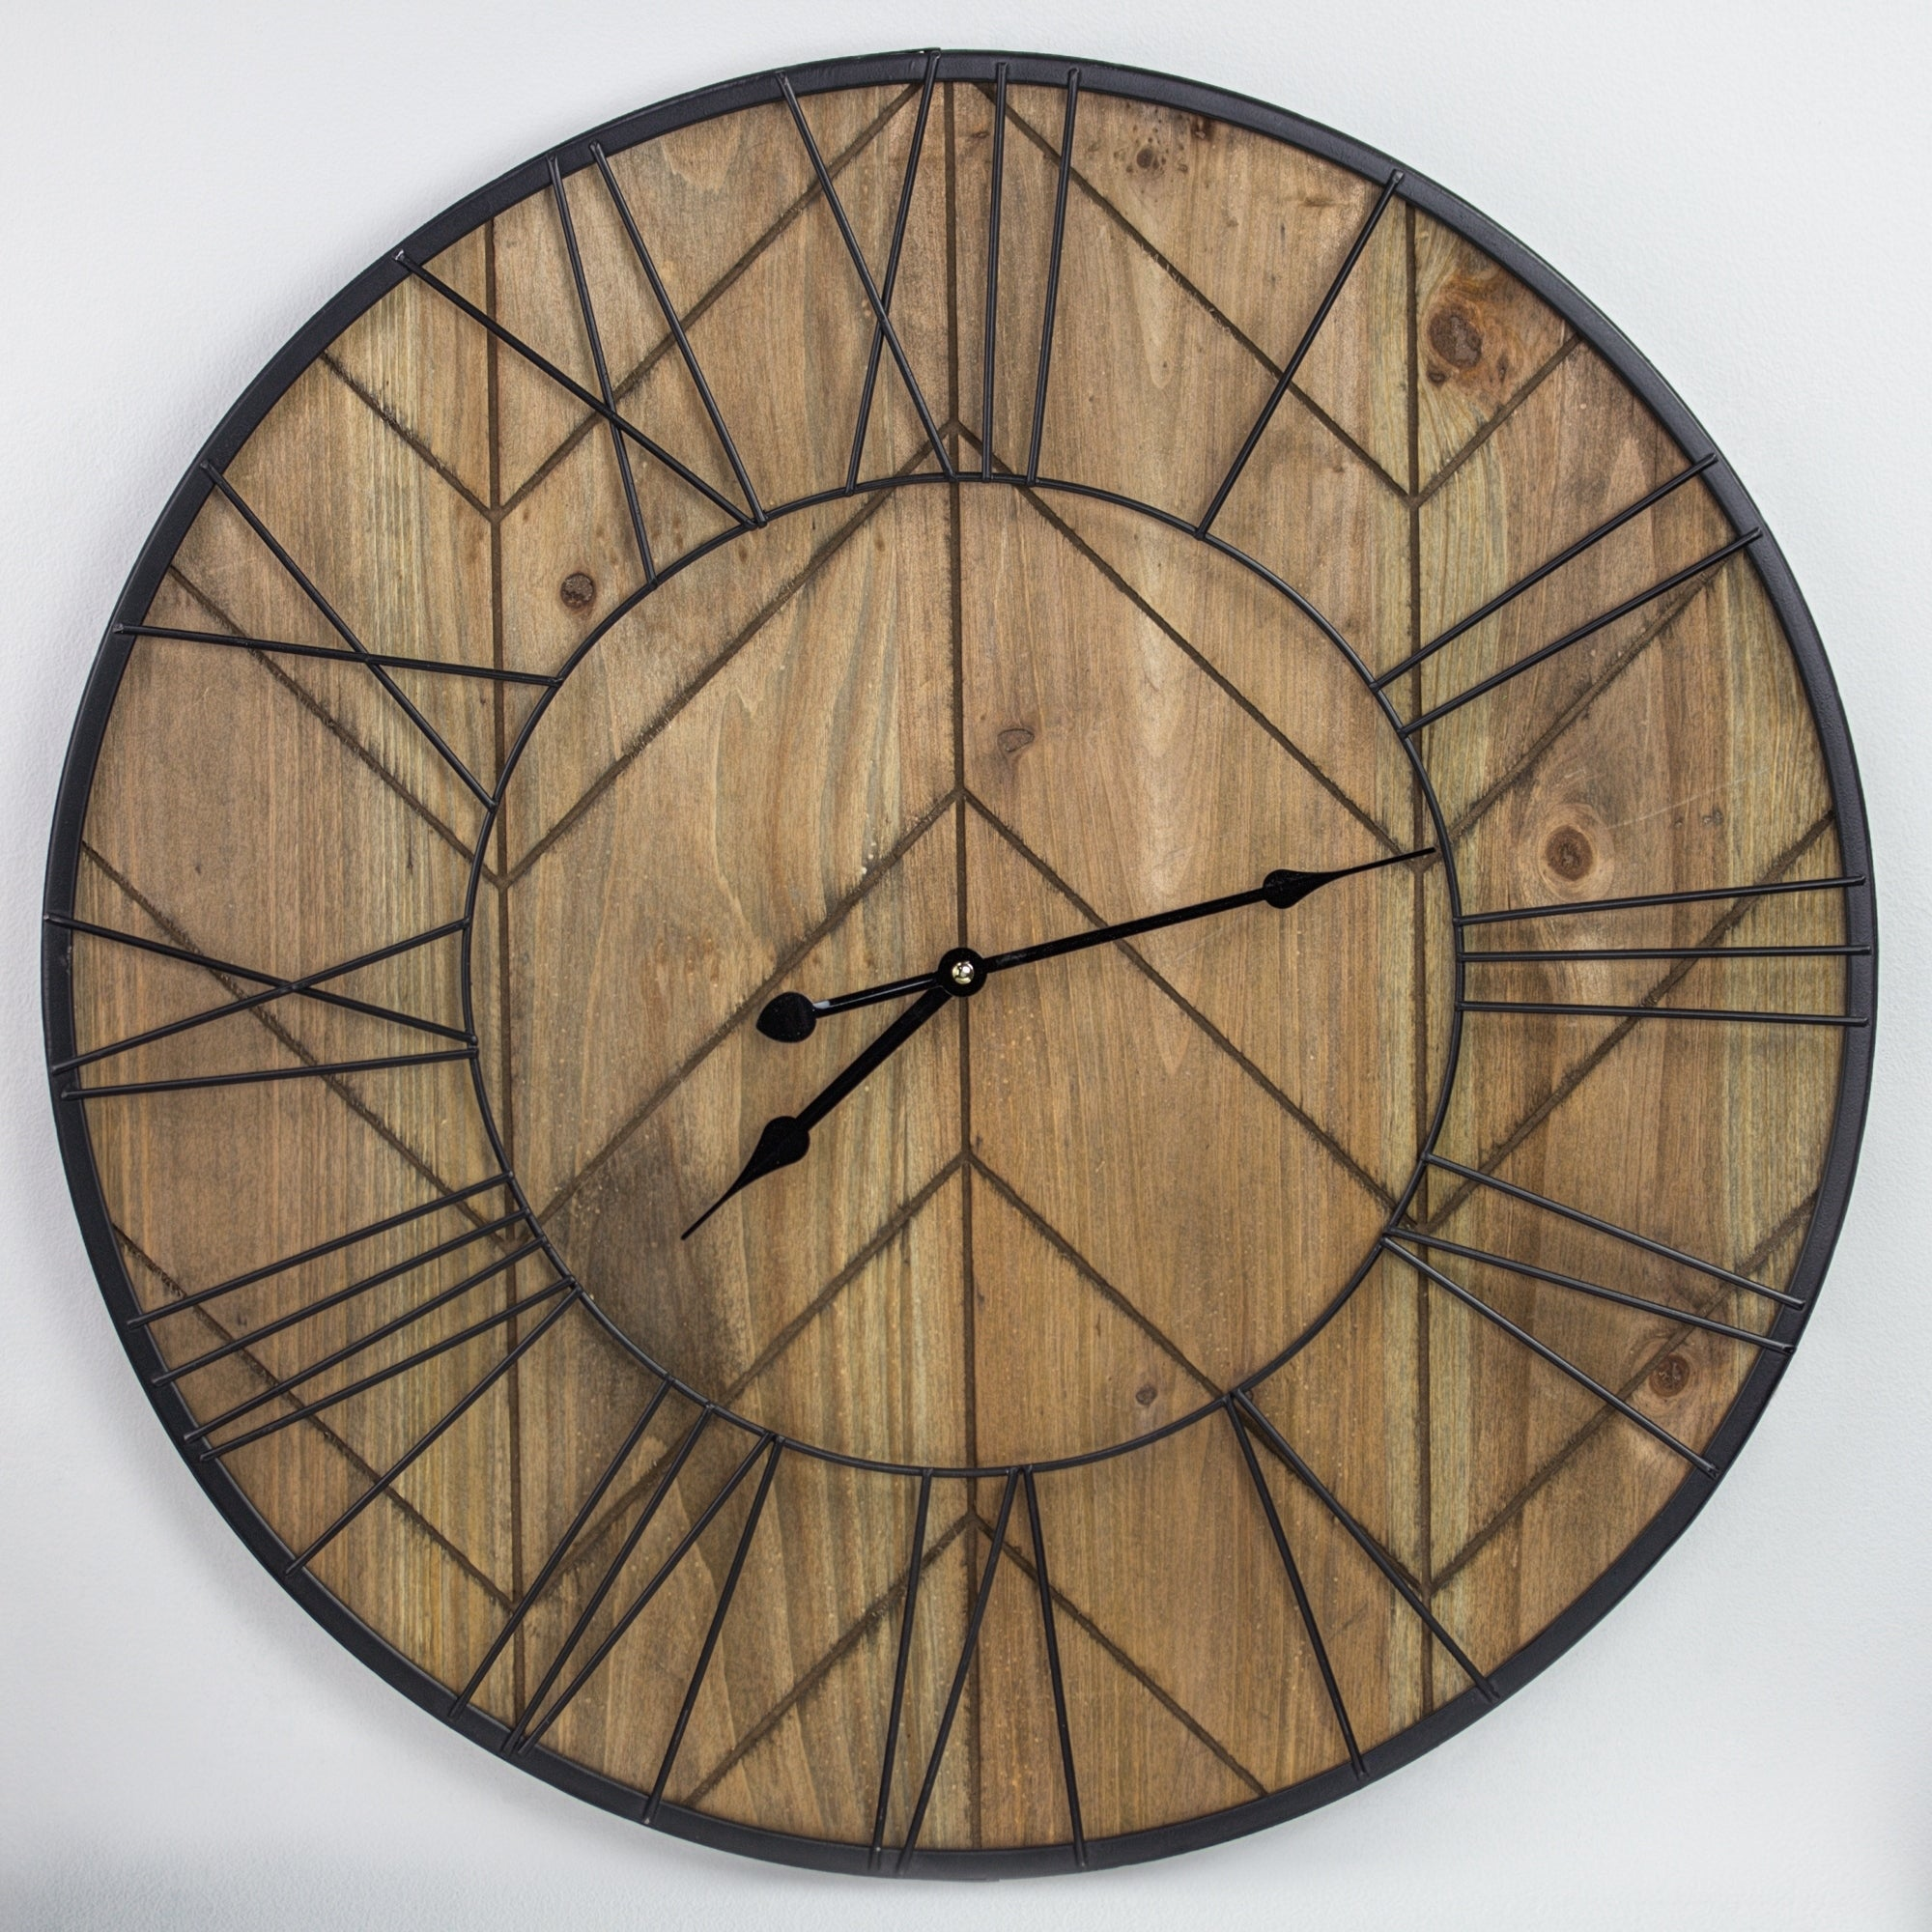 Rustic Wood And Metal Oversized Wall Clock 24 On Sale Overstock 29141438